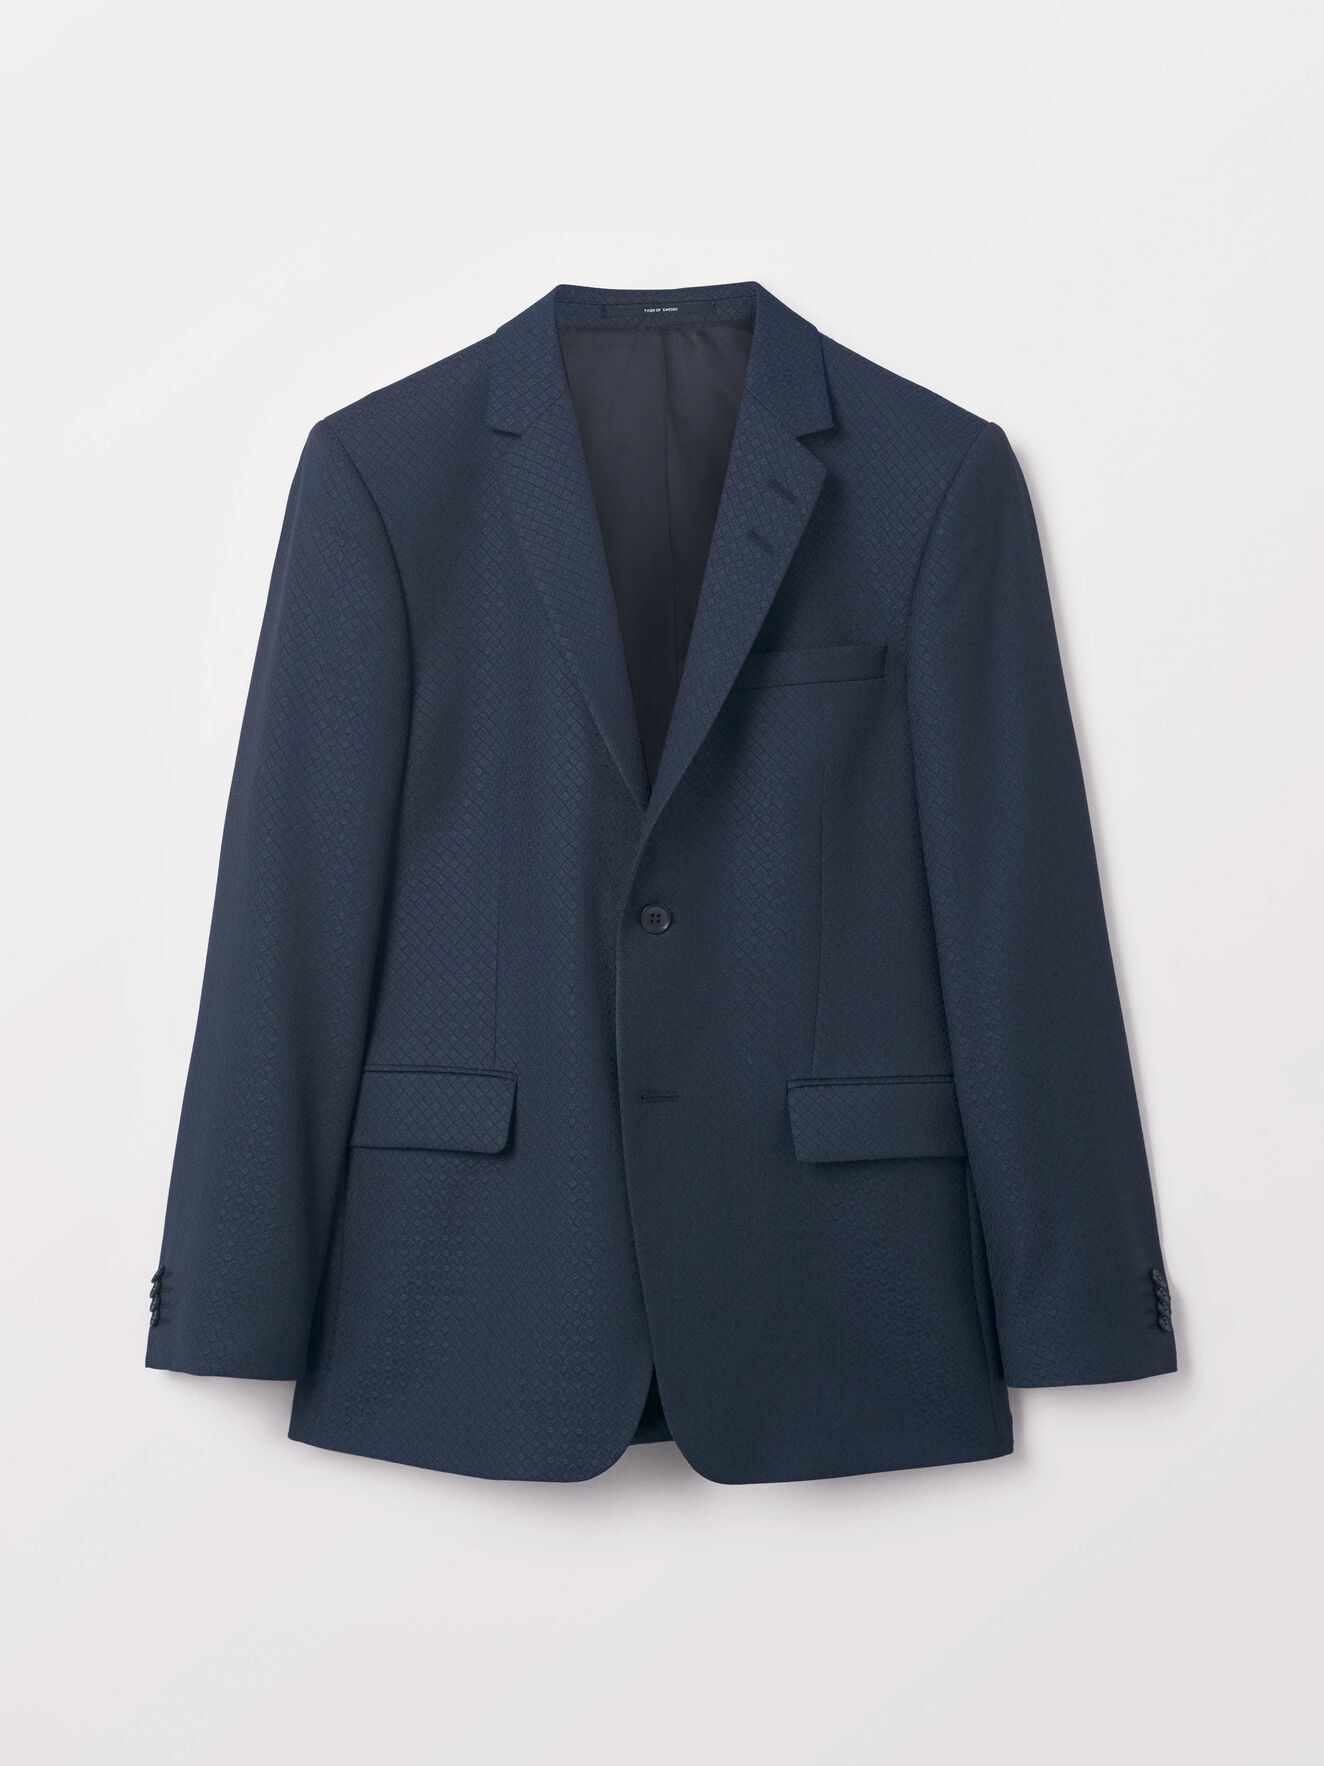 2018 Blazer in Royal Blue from Tiger of Sweden